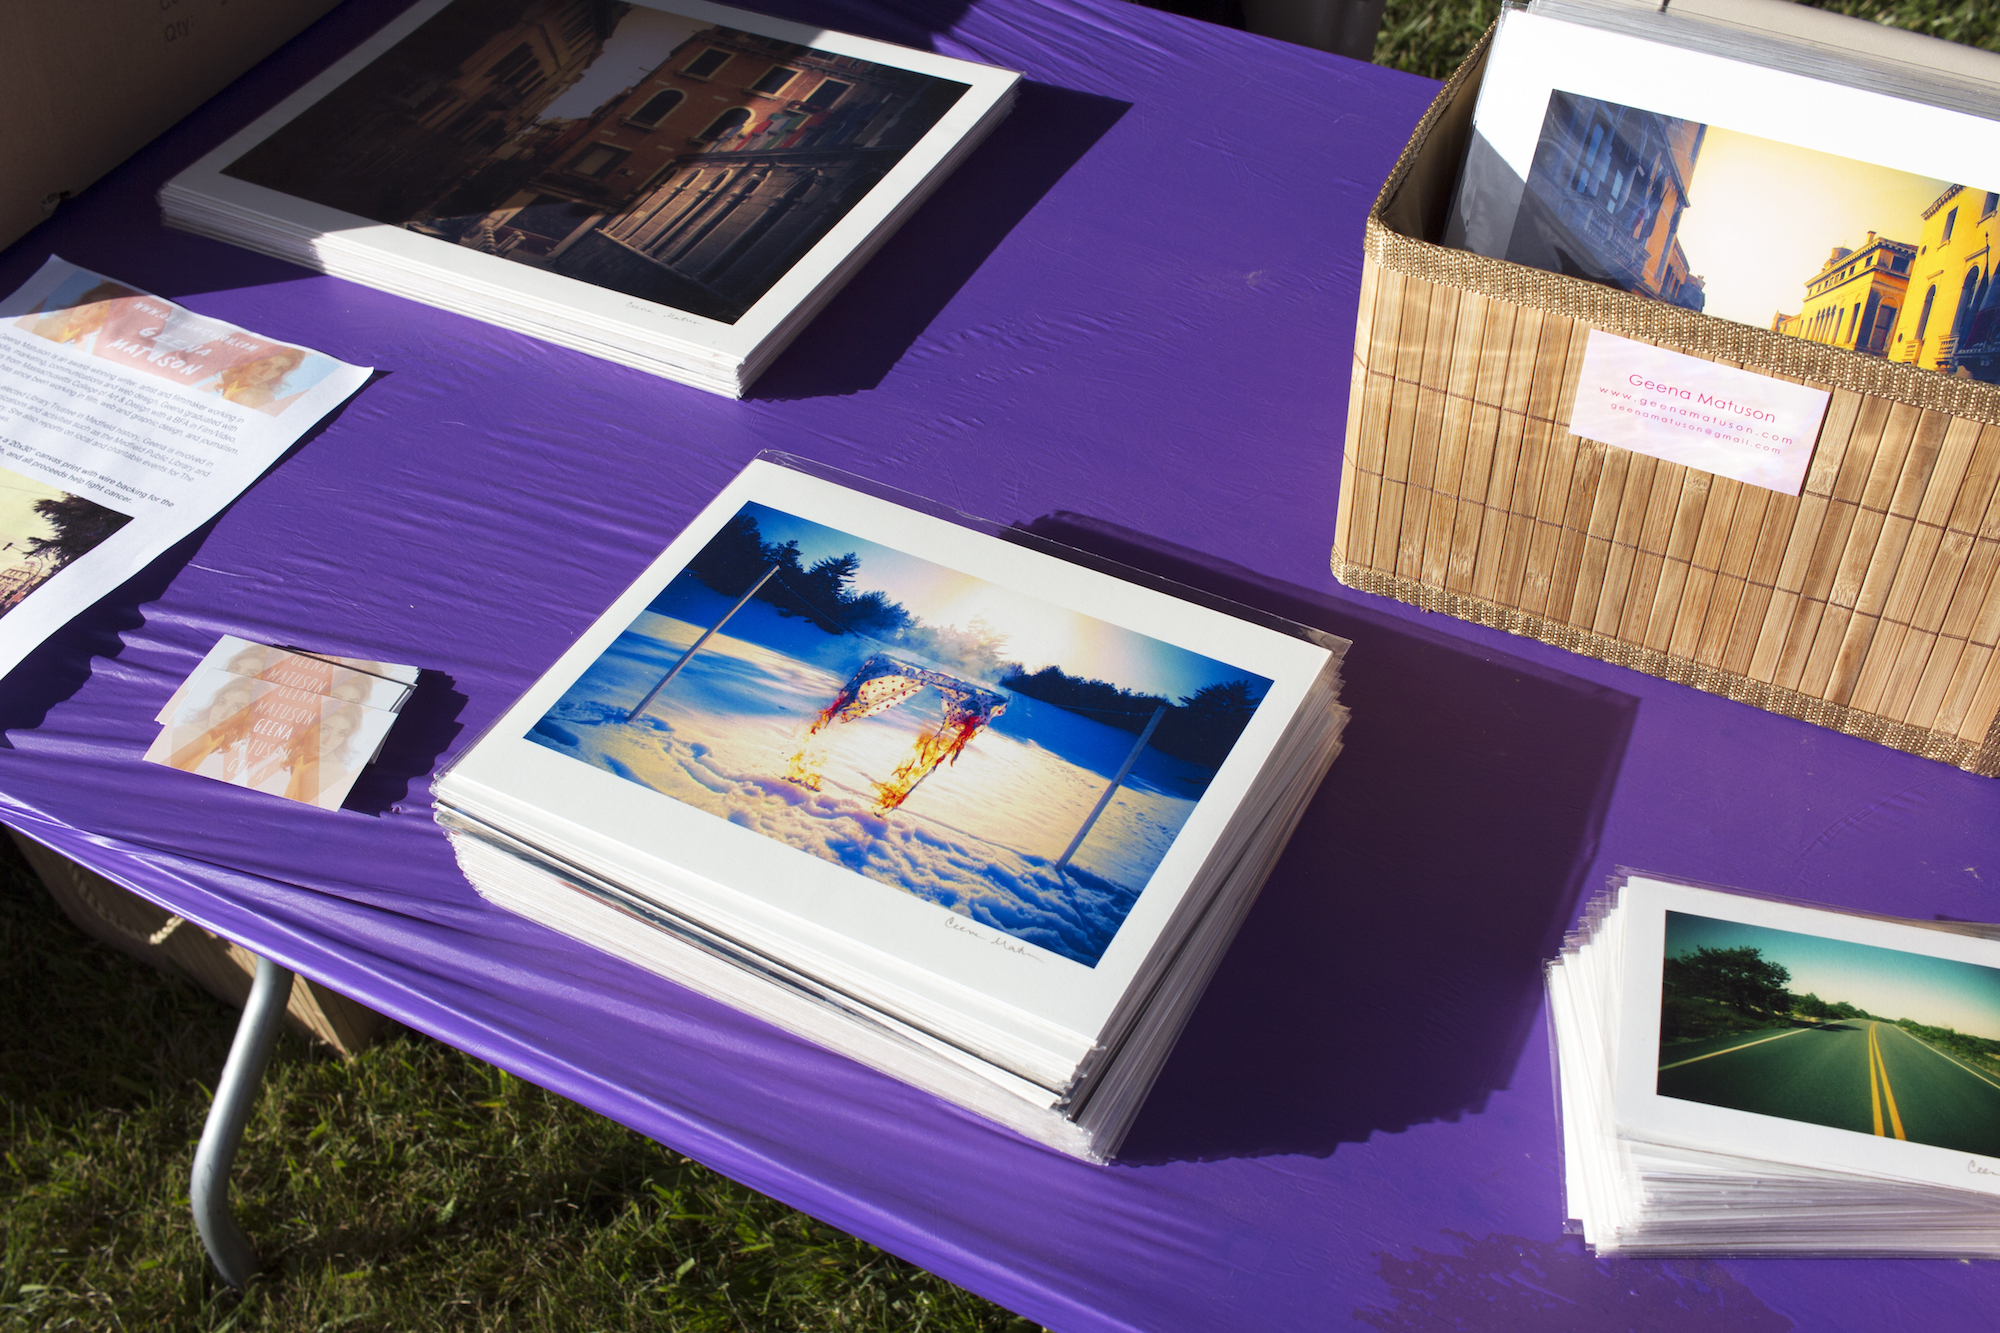 Geena Matuson sells her work for charity at the Relay for Life event in Medway, MA, 2016. Photography by Geena Matuson @geenamatuson #thegirlmirage.